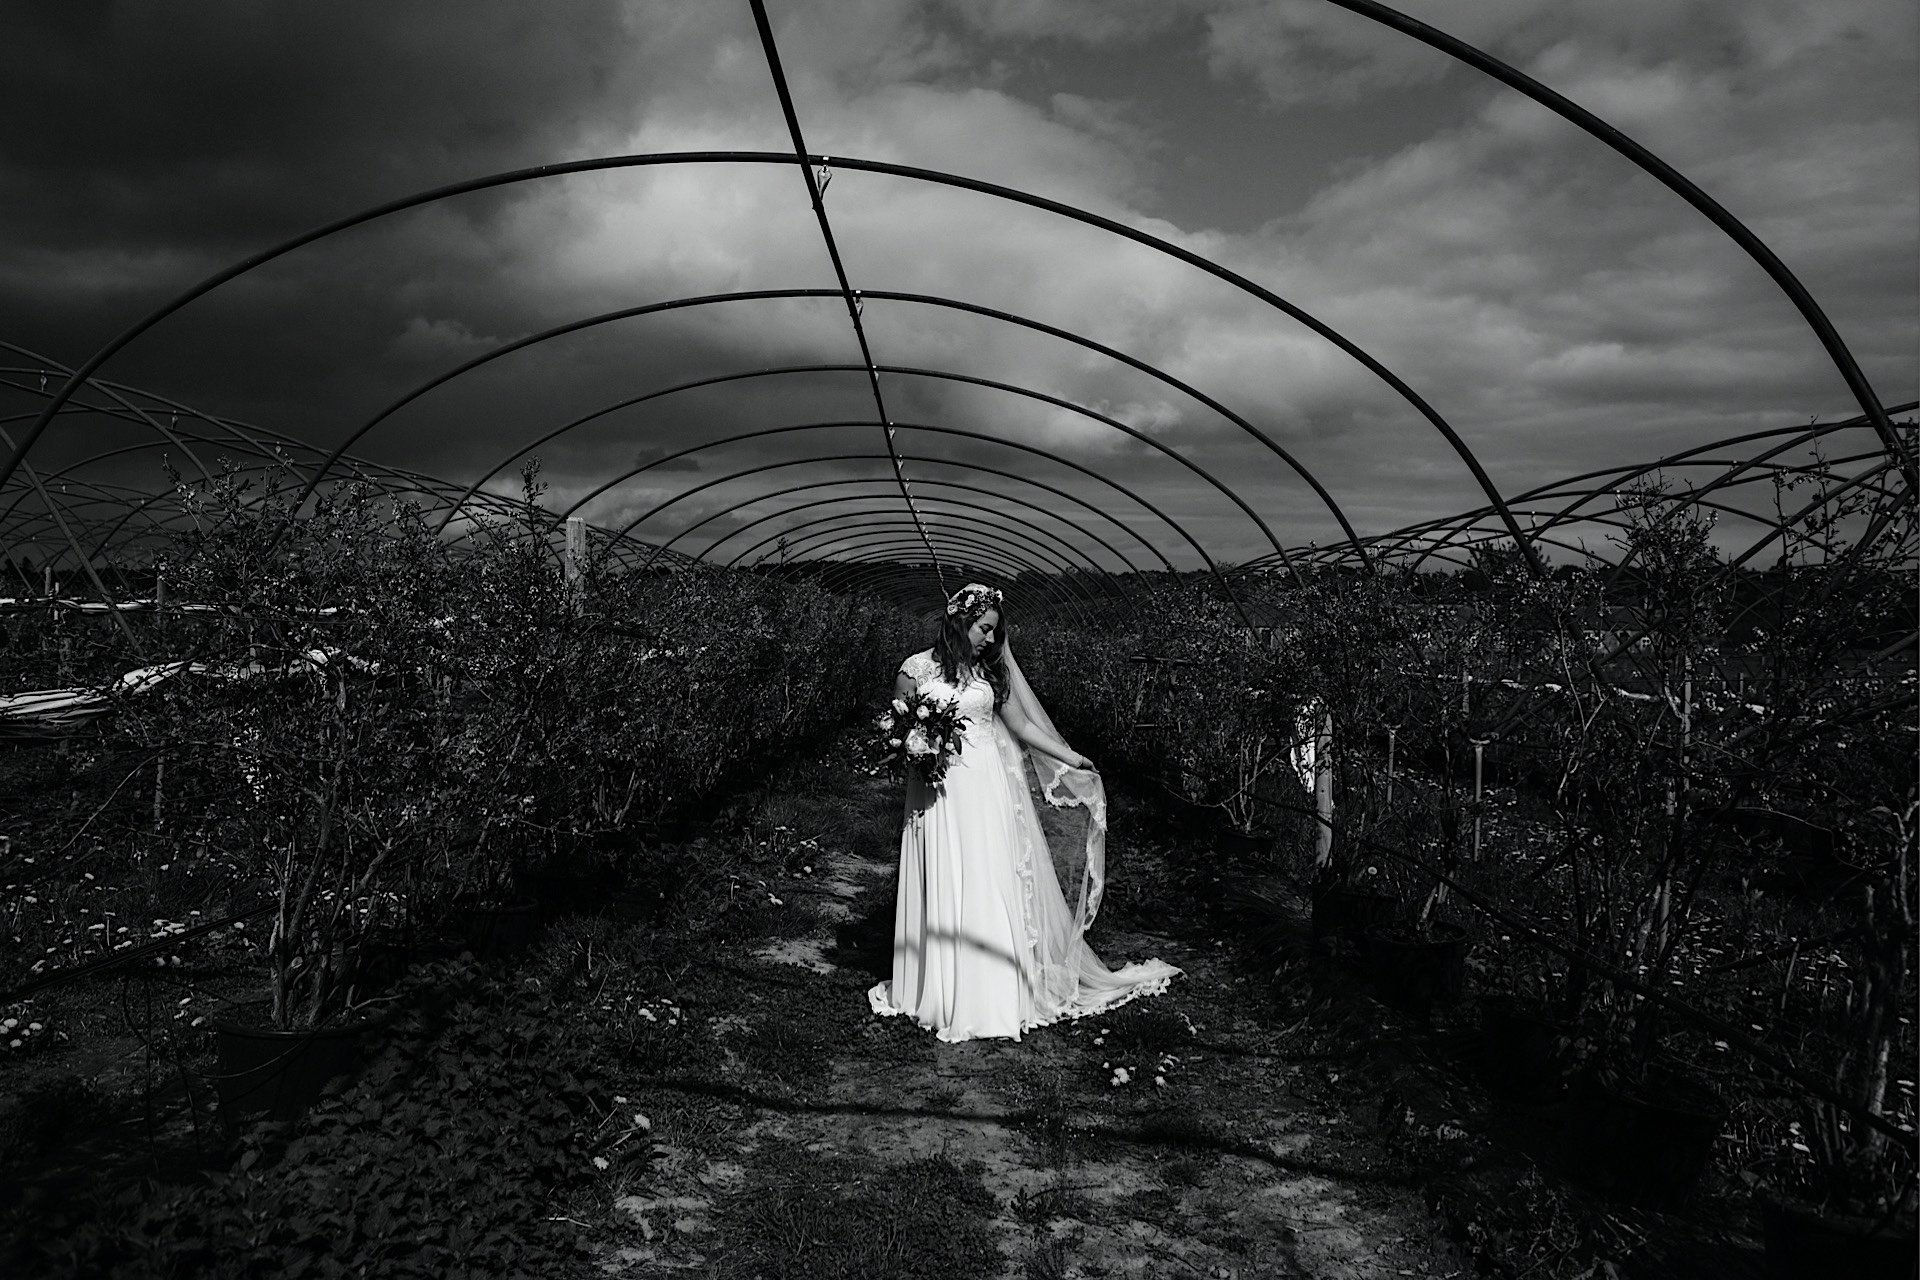 of bride under and black image frame polytunnel White